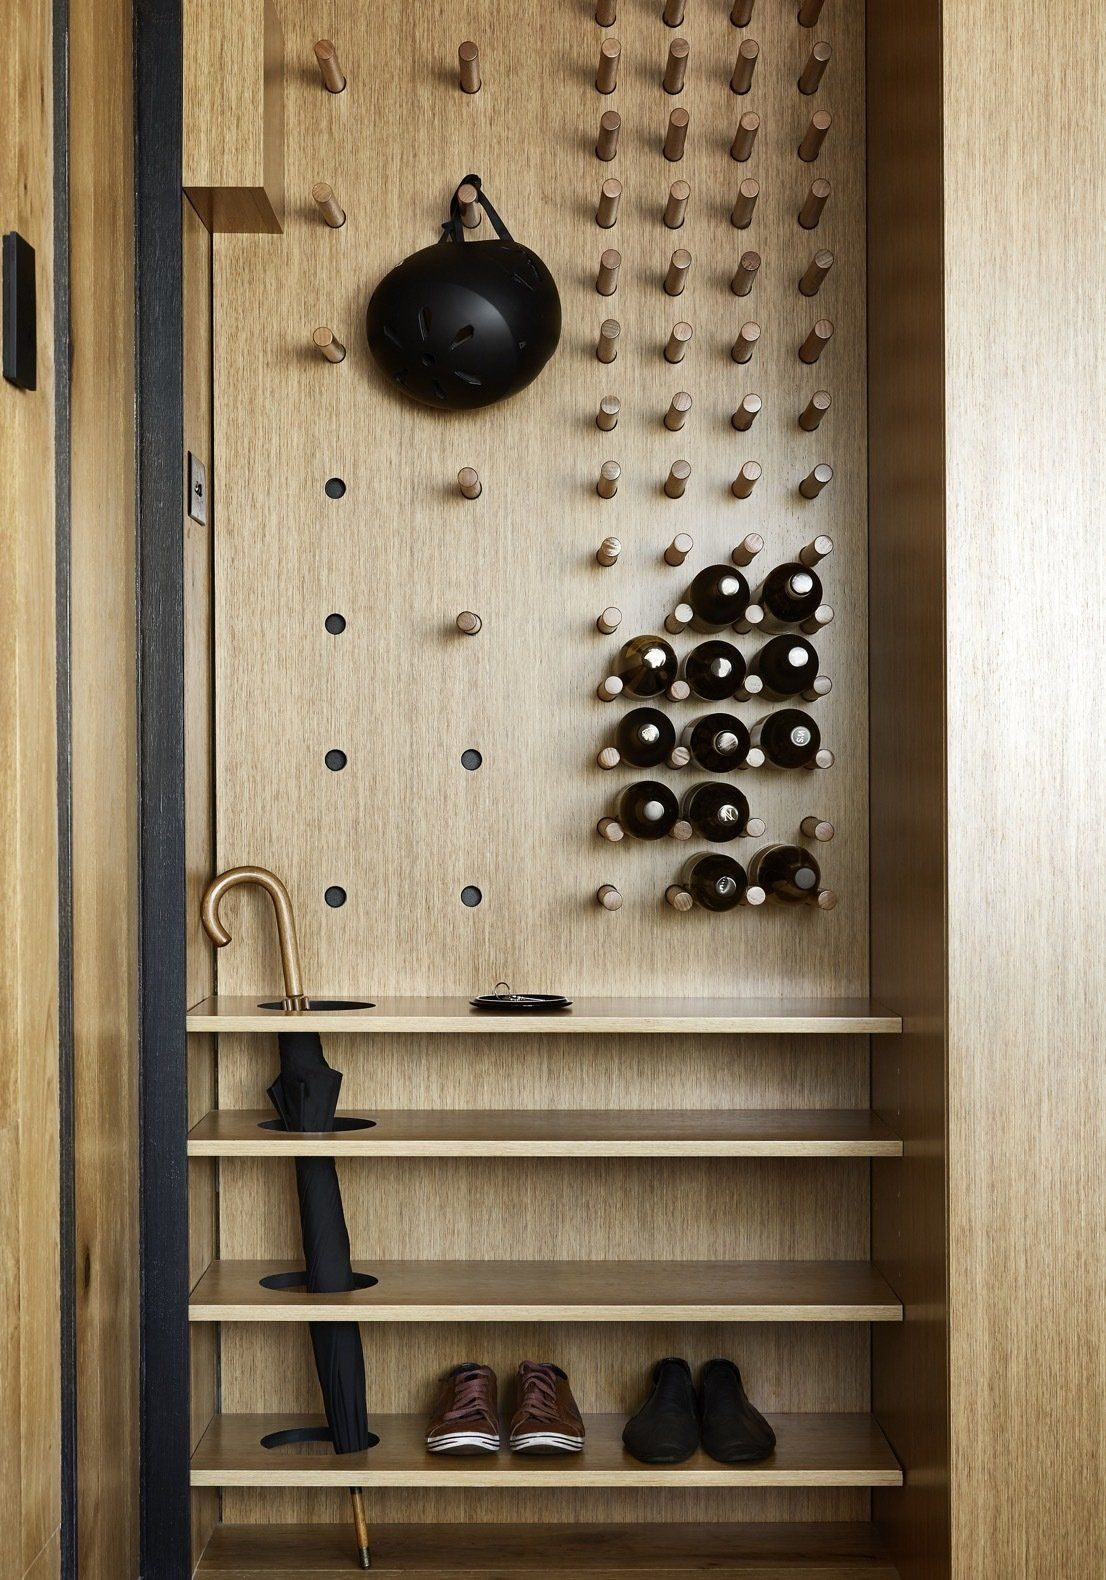 The entryway is small but very space-efficient, featuring a clever, custom-made storage unit with pegs, slots and shelves